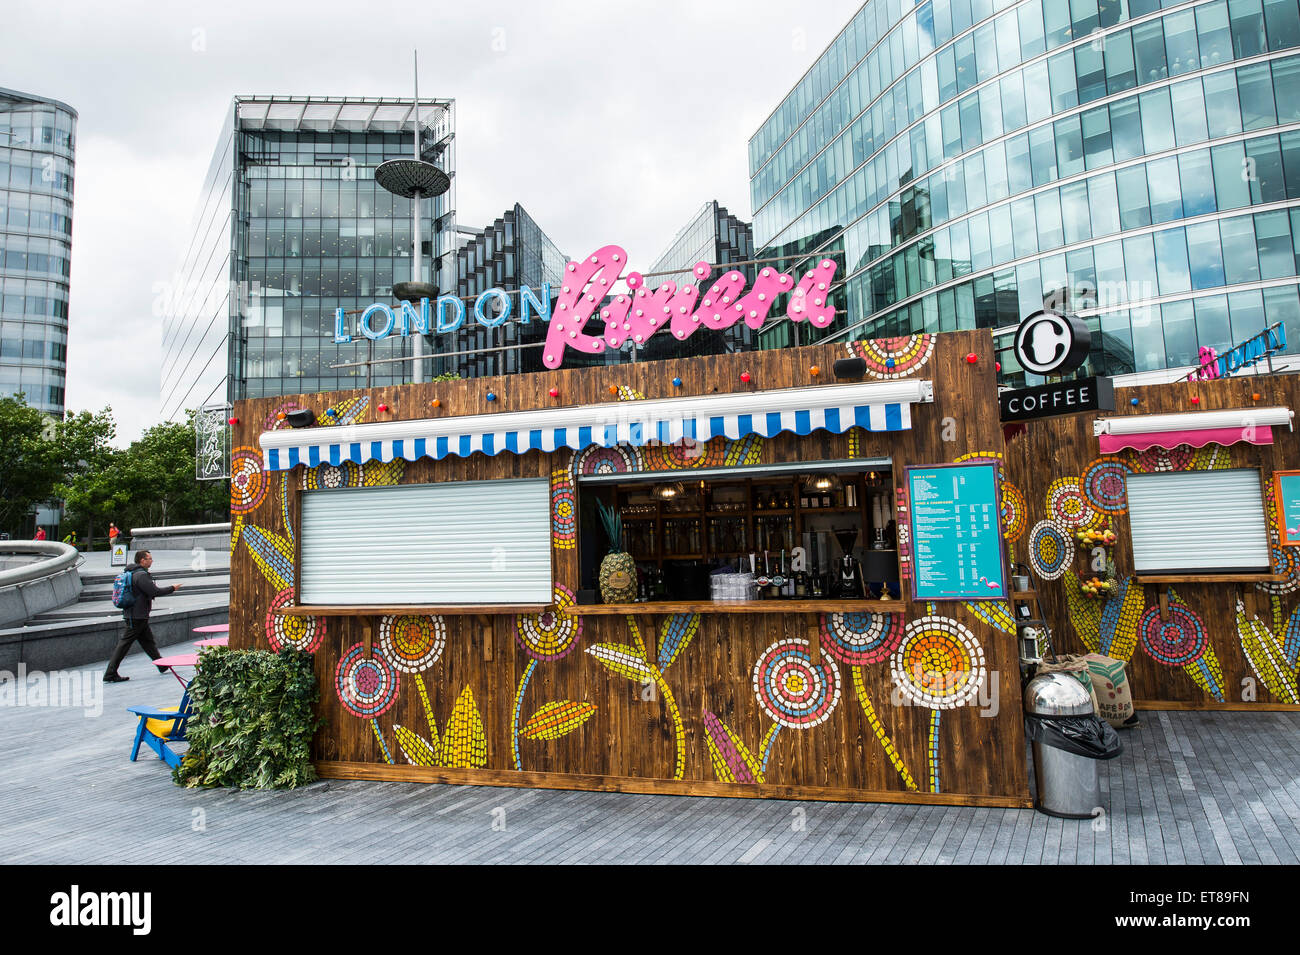 London Riviera Pop Up Restaurant next to City Hall in